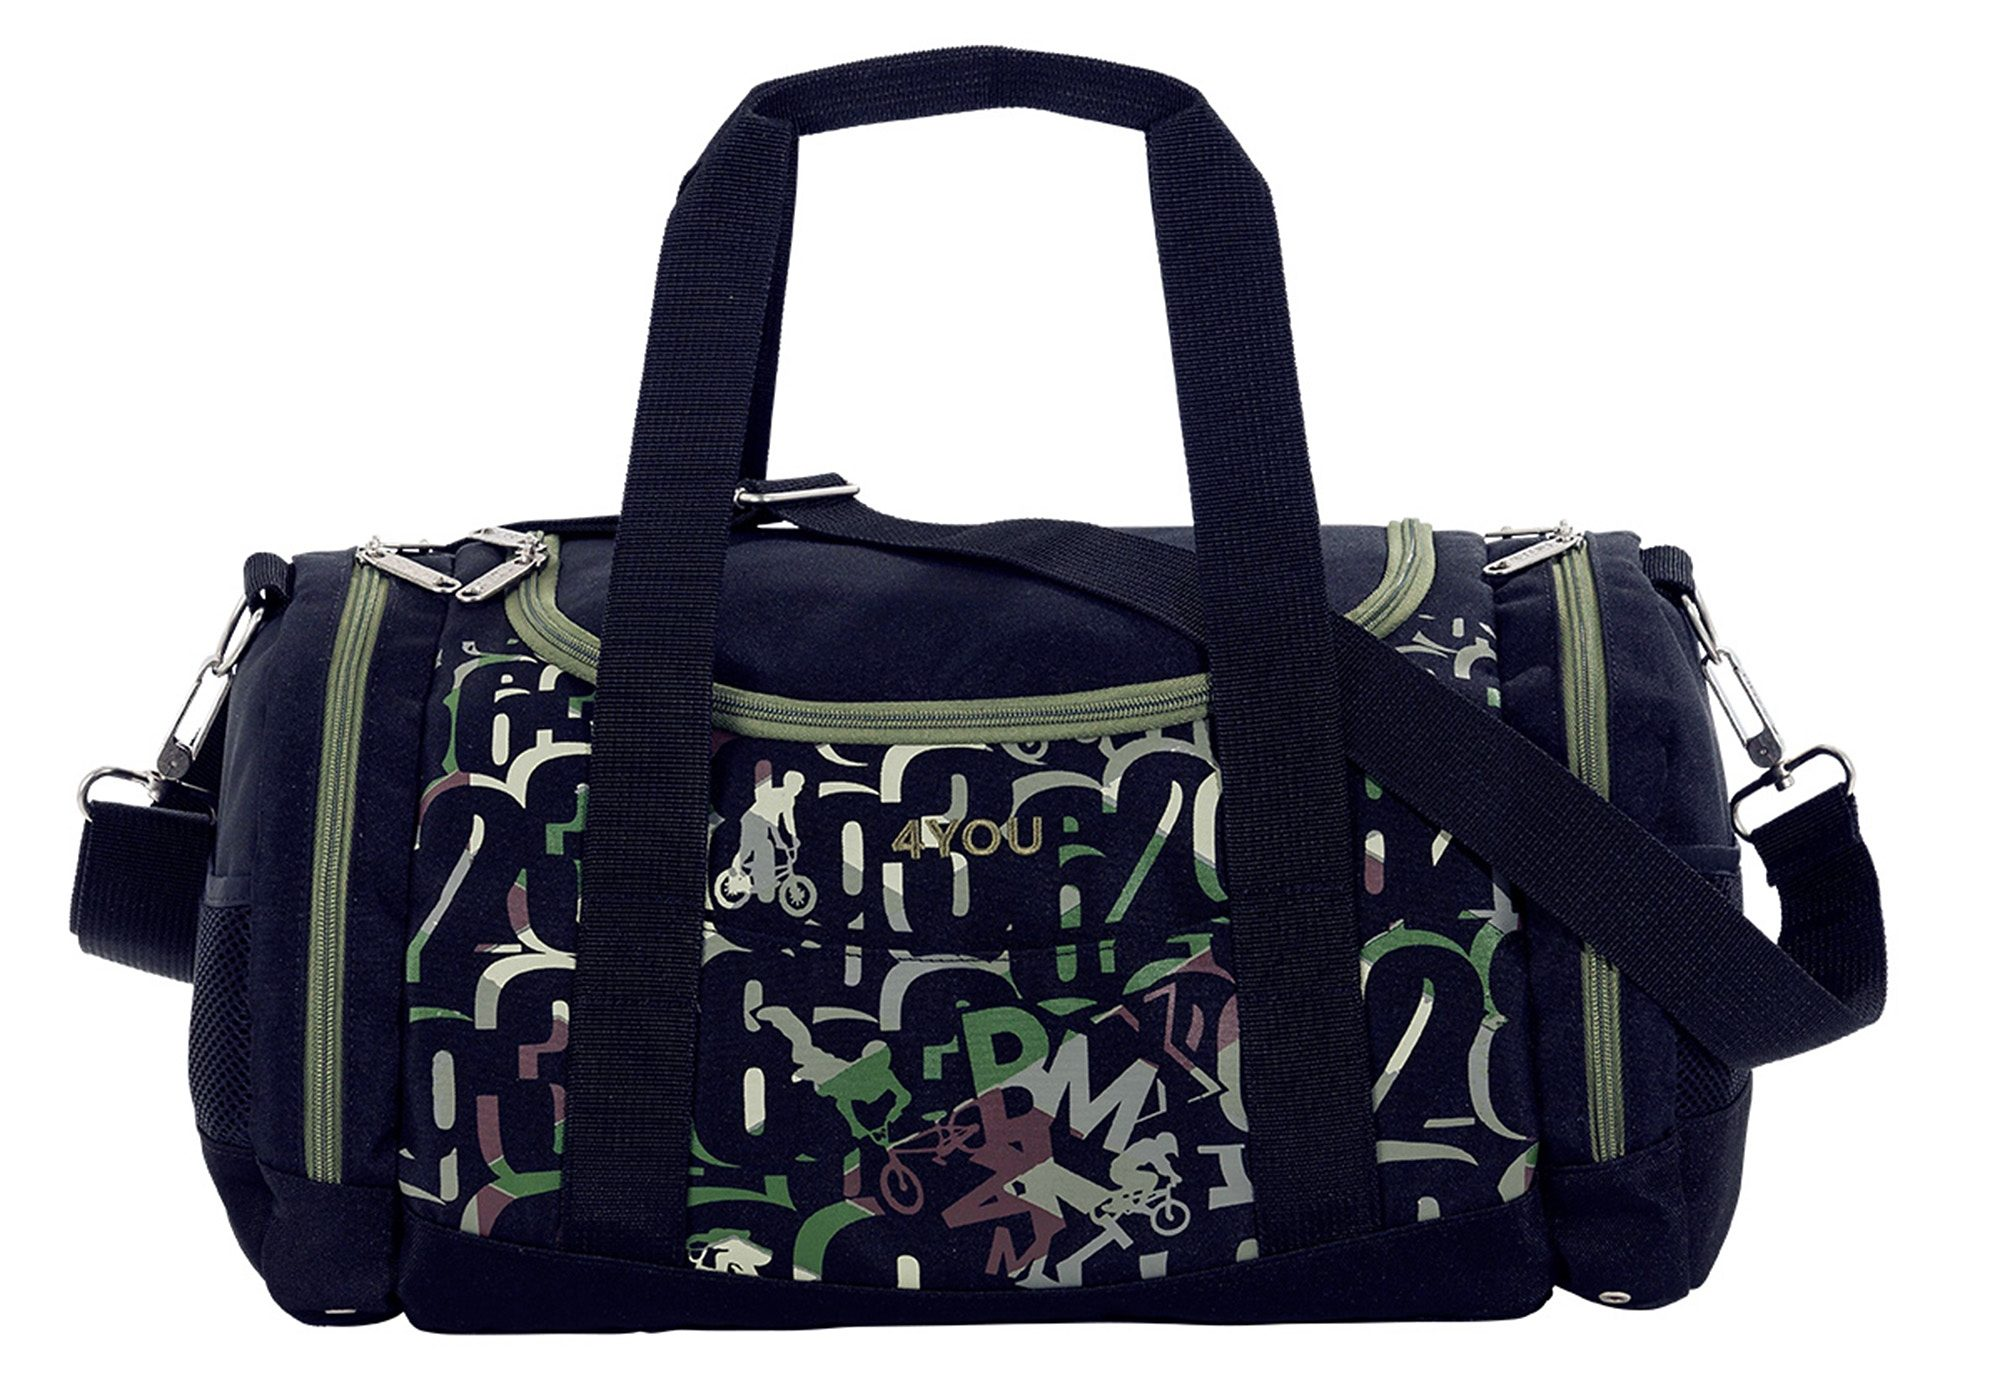 4YOU Sporttasche, BMX, »Sportbag Function«